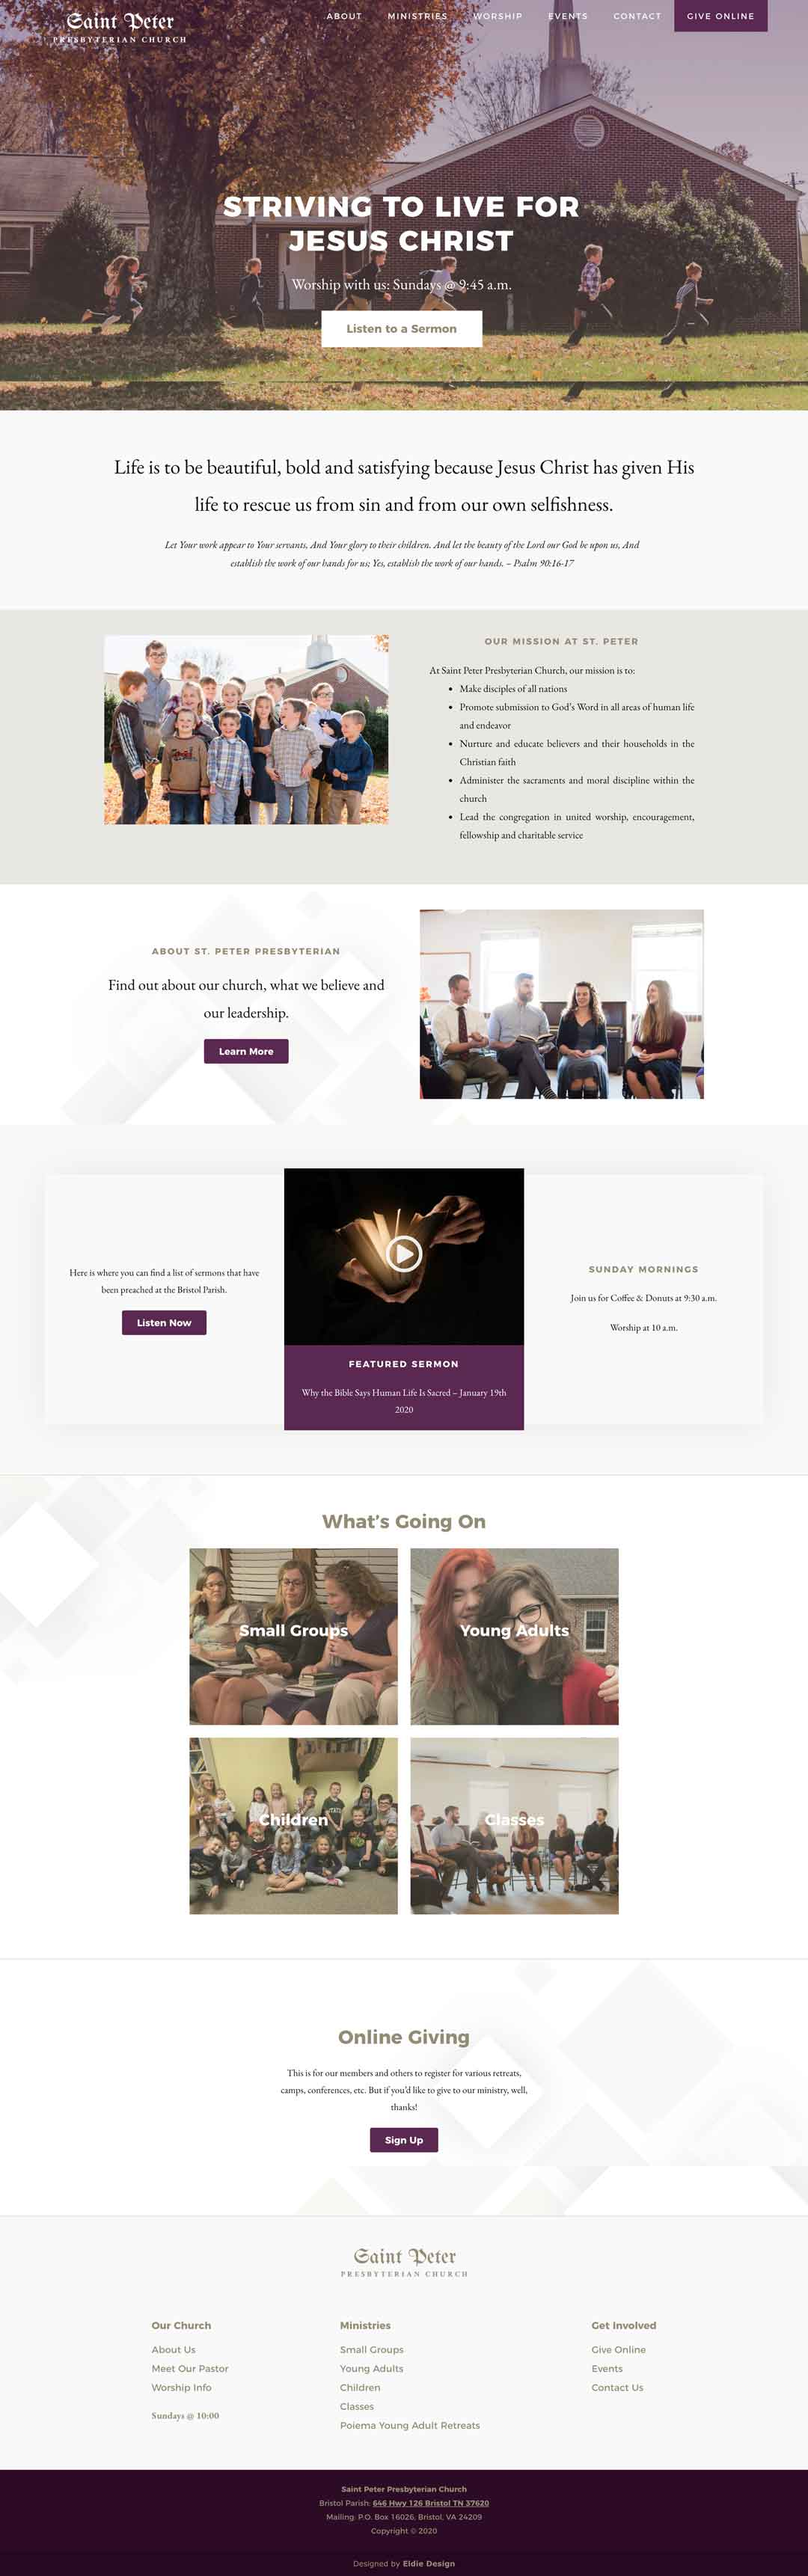 Presbyterian Church Website Design